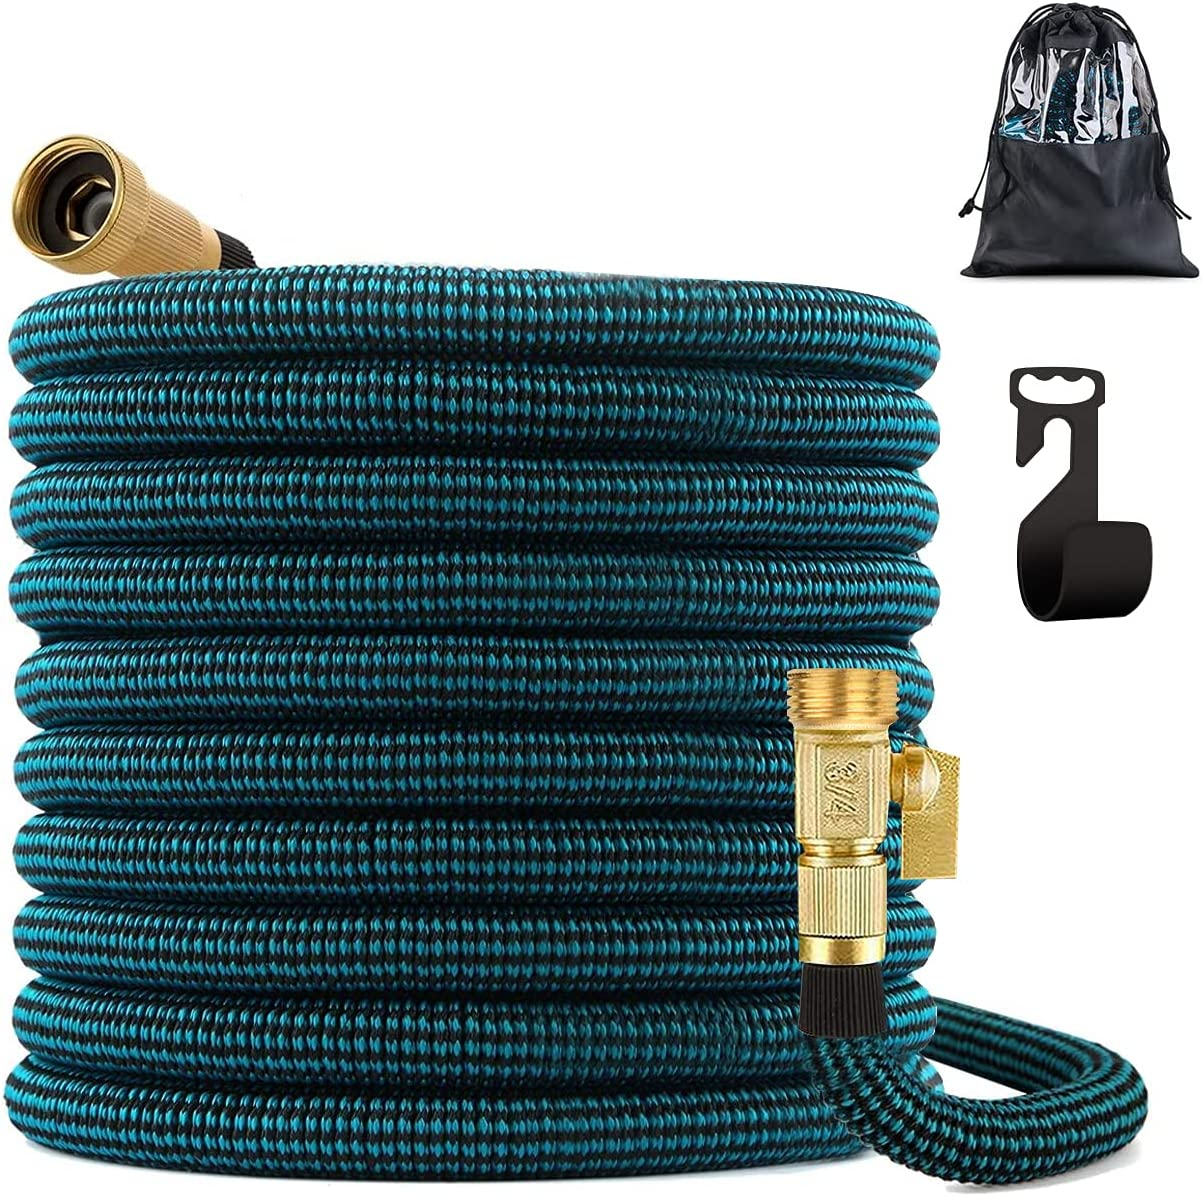 CORROY 100FT Expandable Garden Hose Leakproof Expanding Water Hose with Solid Fittings Connectors,Easy Storage Garden Water Hose